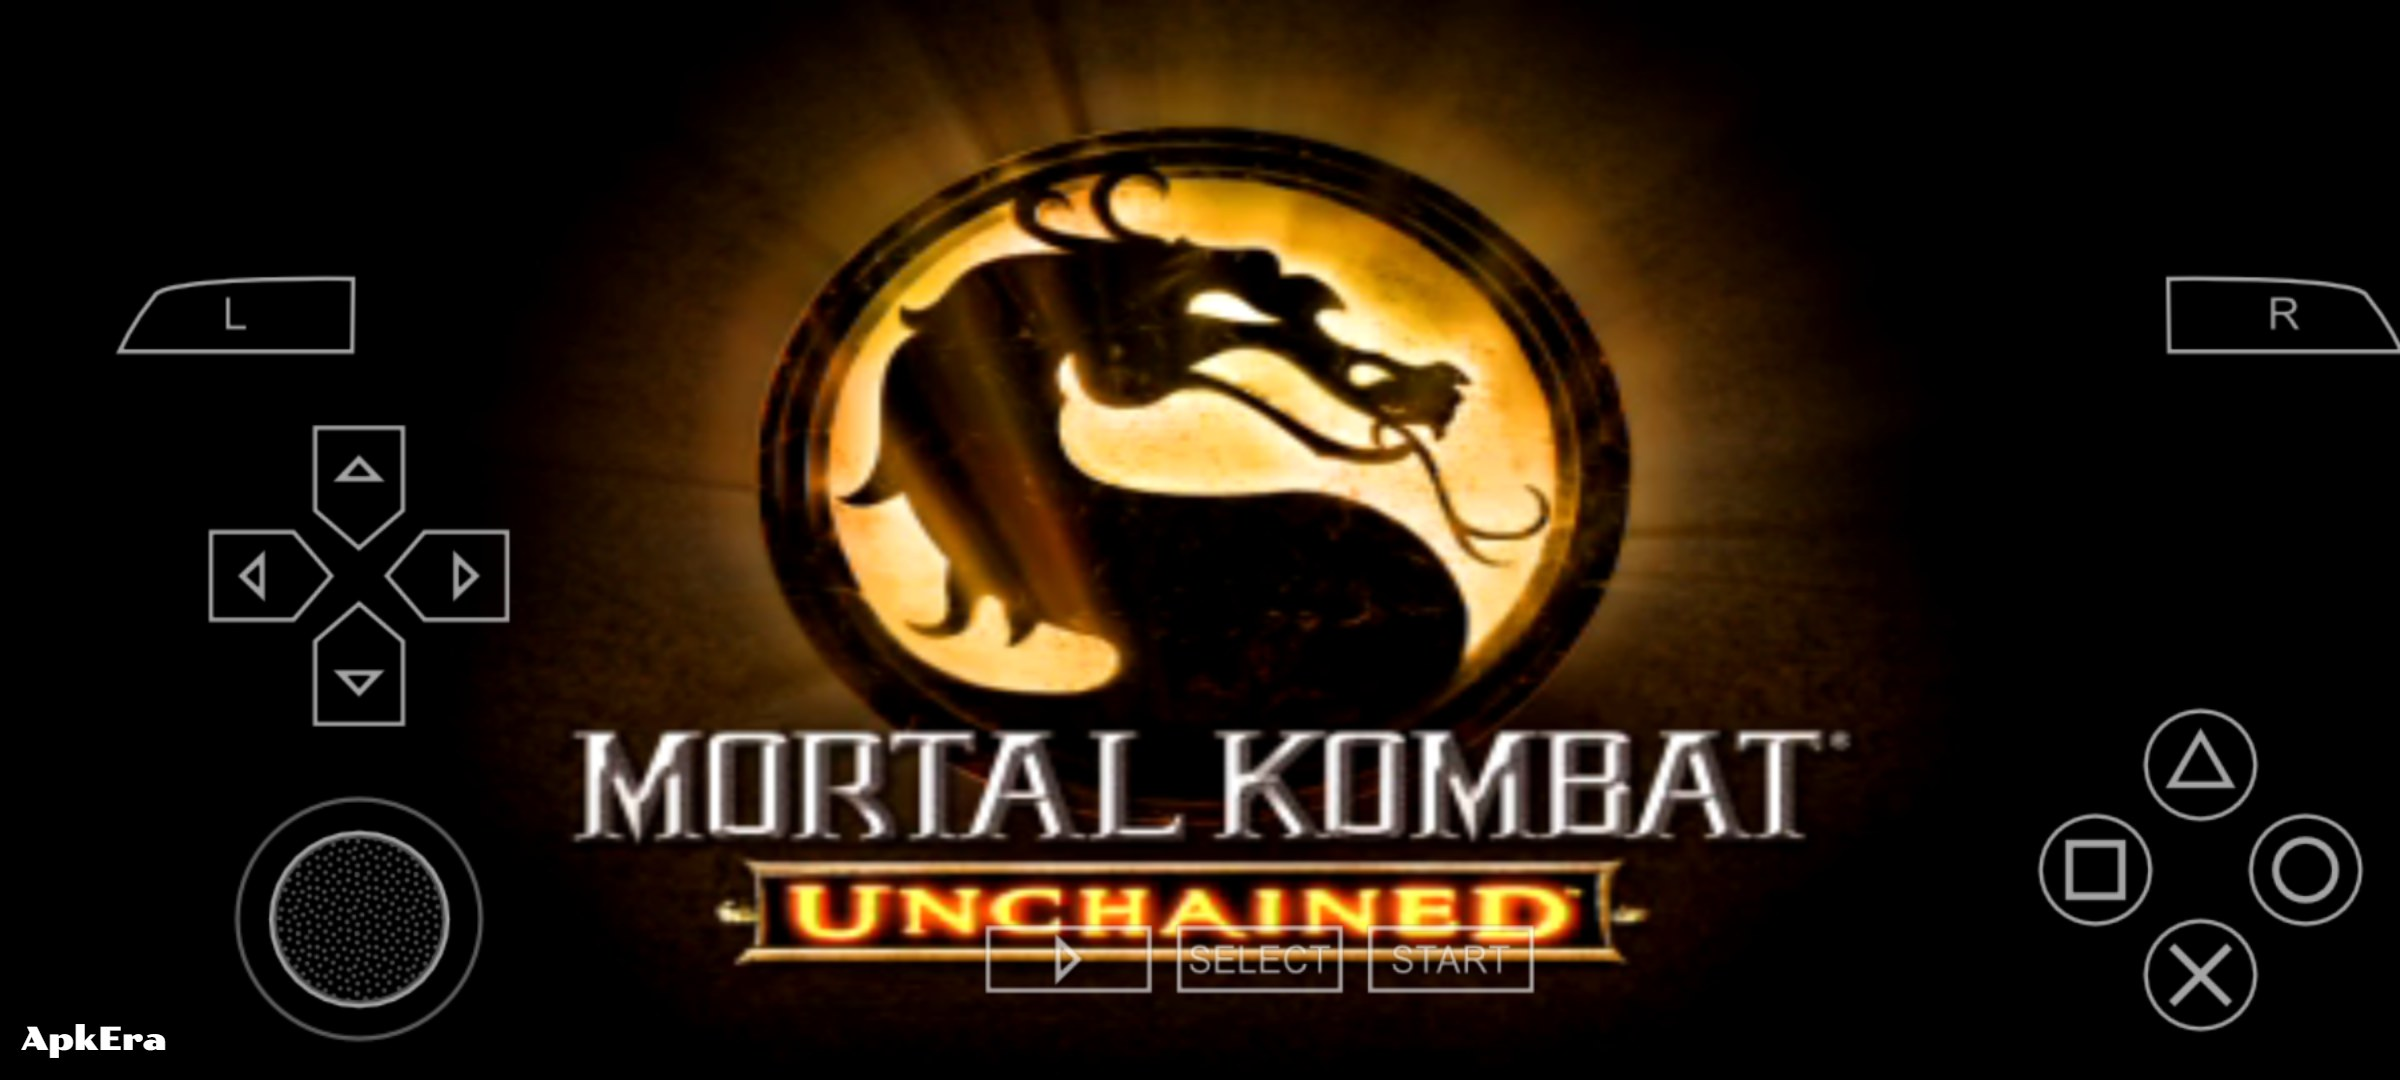 Mortal Kombat: Unchained PPSSPP Download